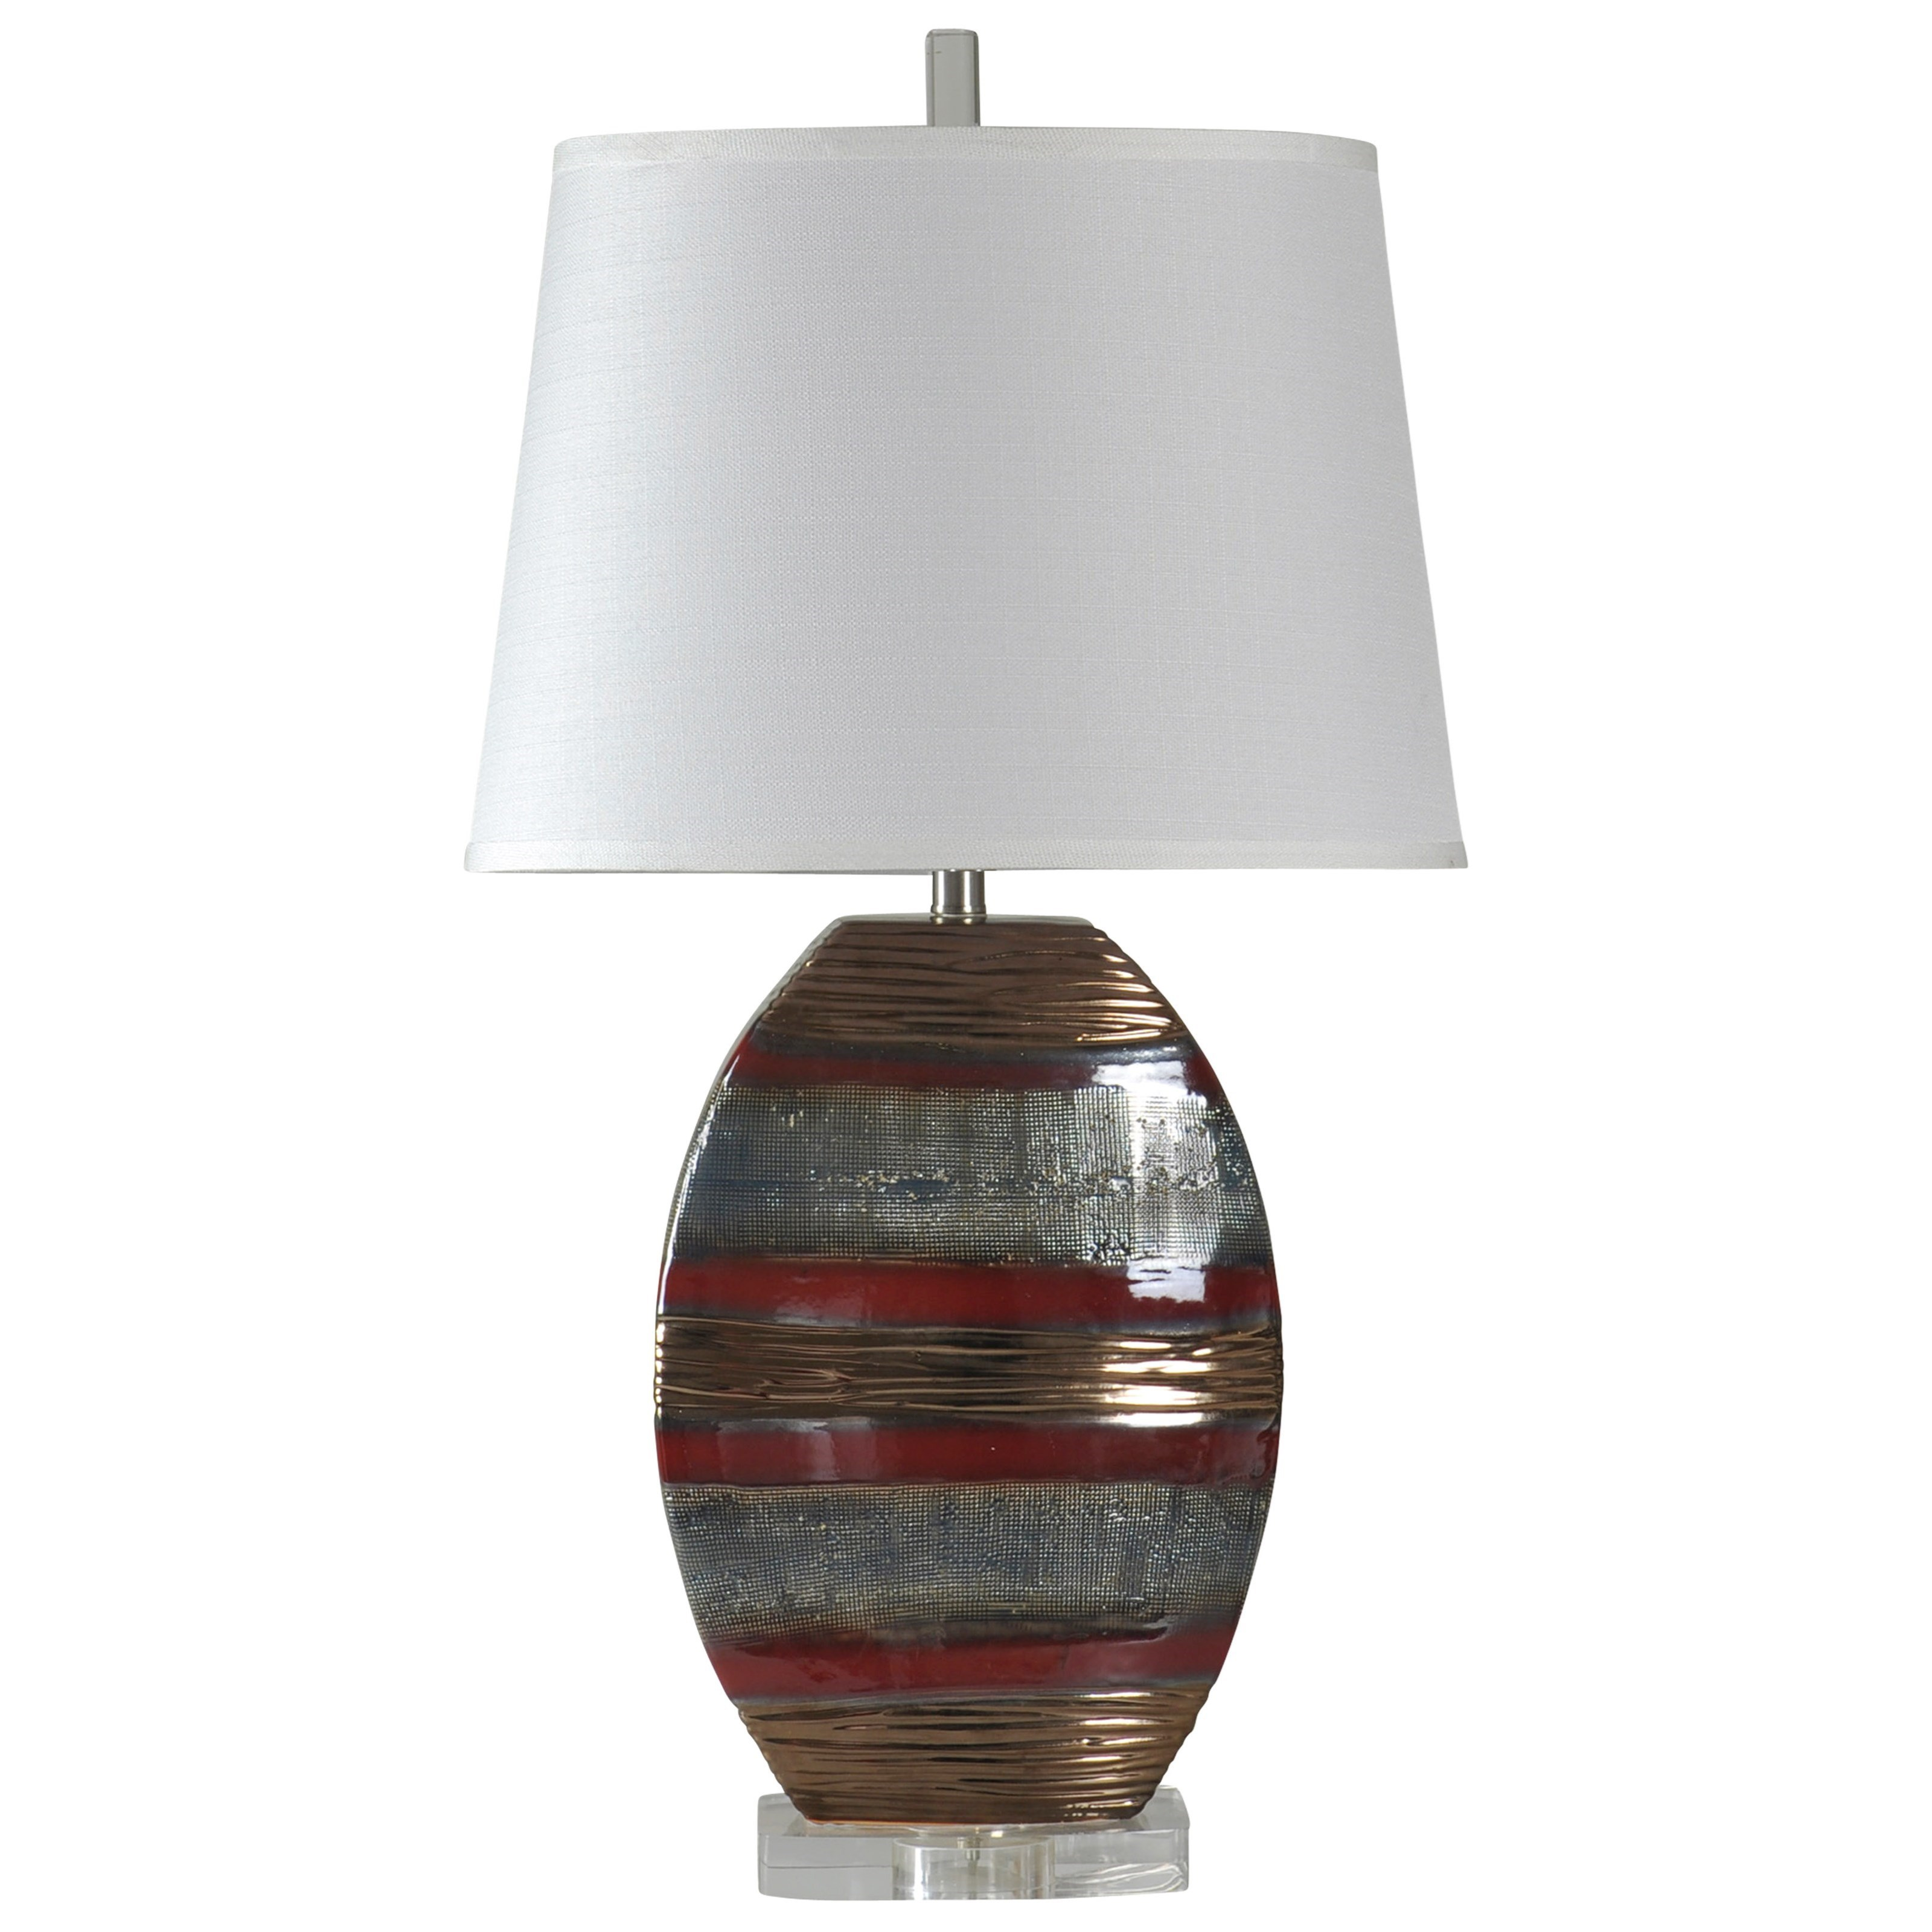 Earth Tone Ceramic Lamp